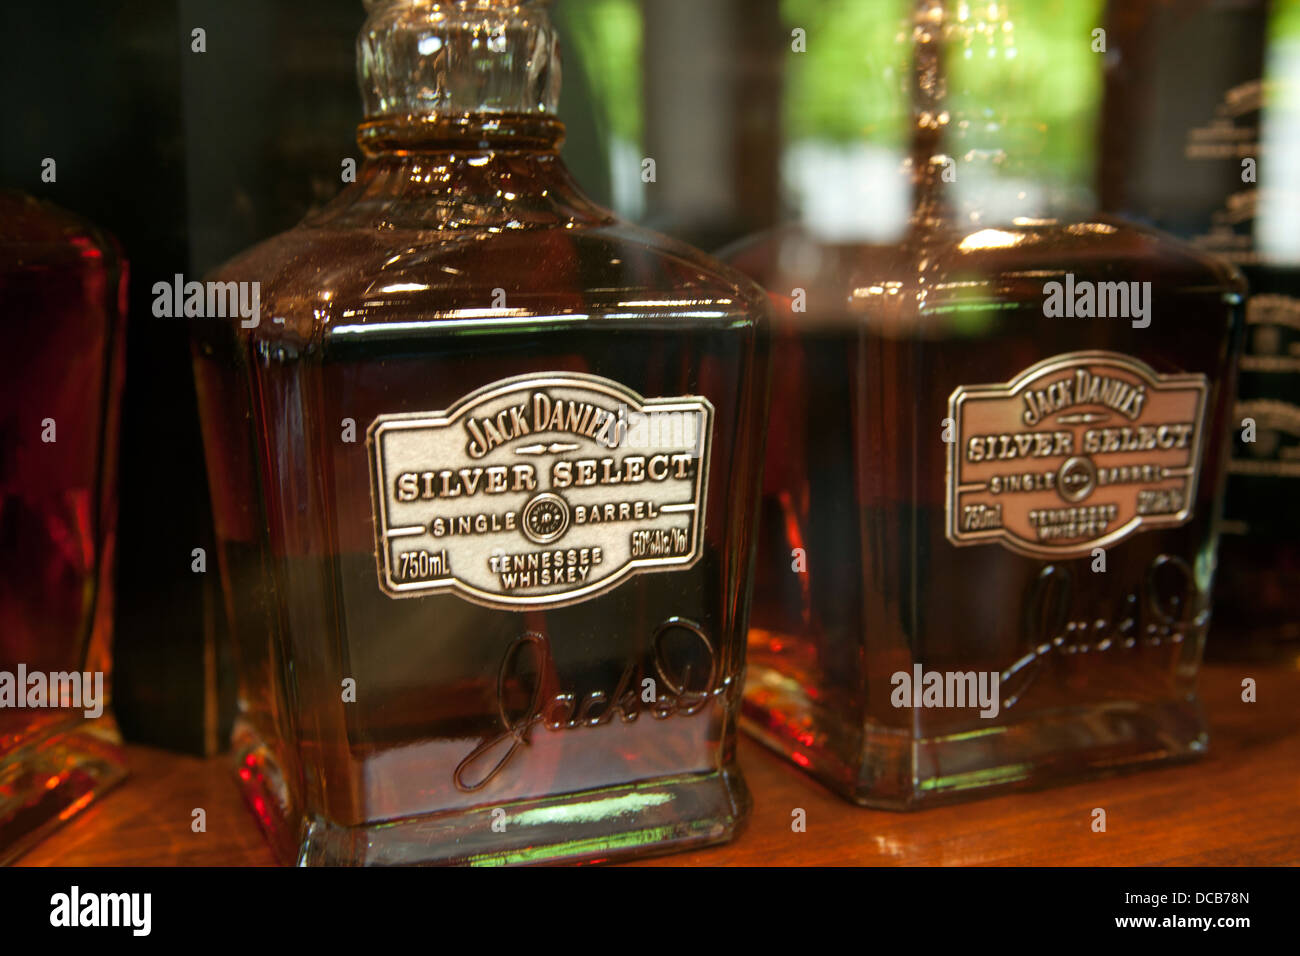 Bottles Of Jack Daniel S Silver Select Whiskey On Sale At The Jack Stock Photo Alamy